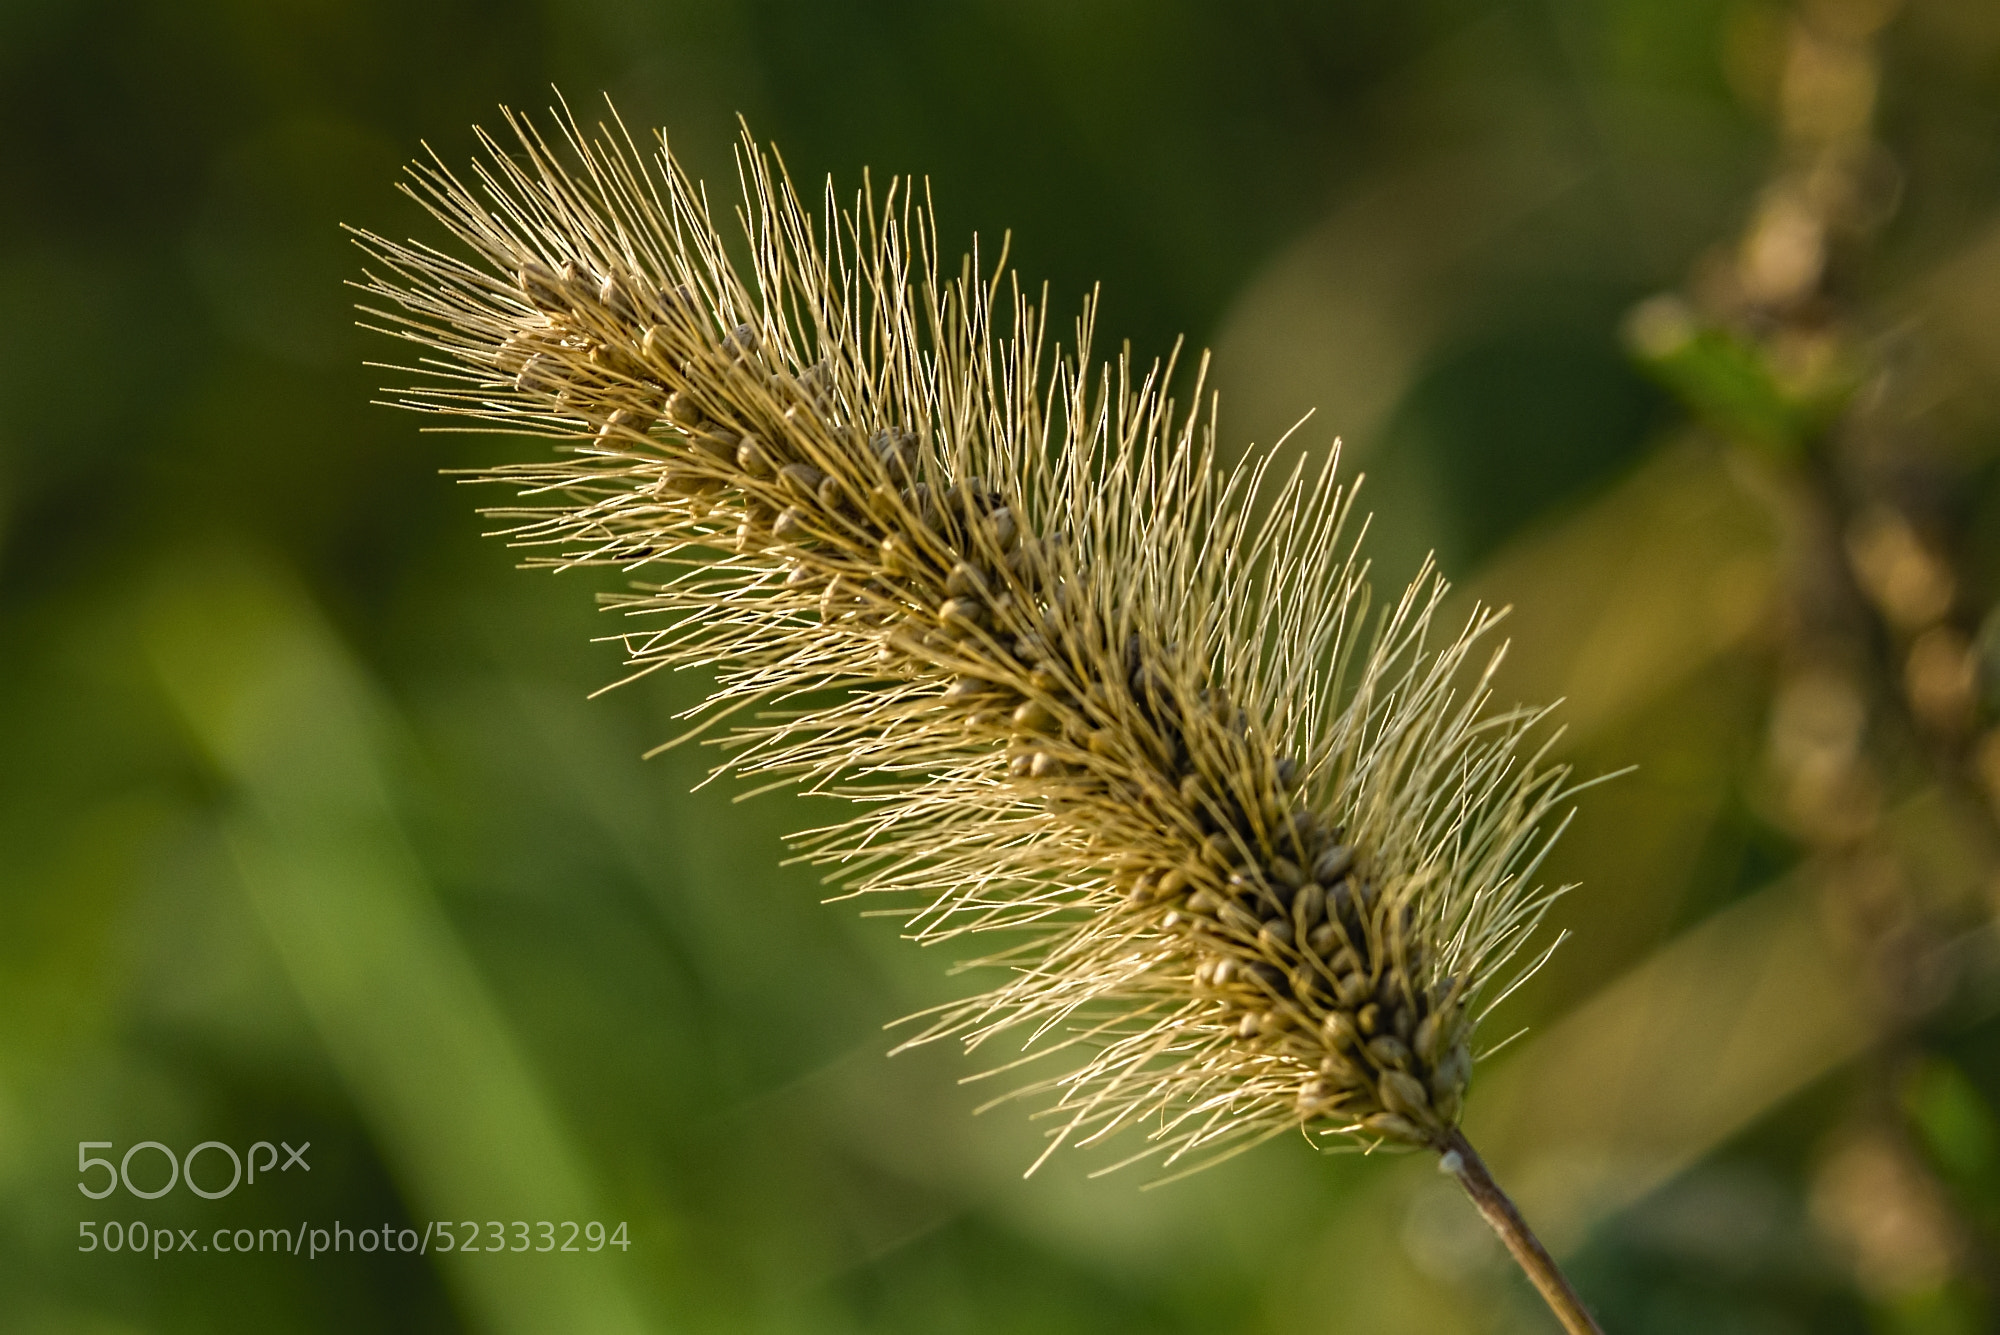 Photograph Grass by K. Beck on 500px